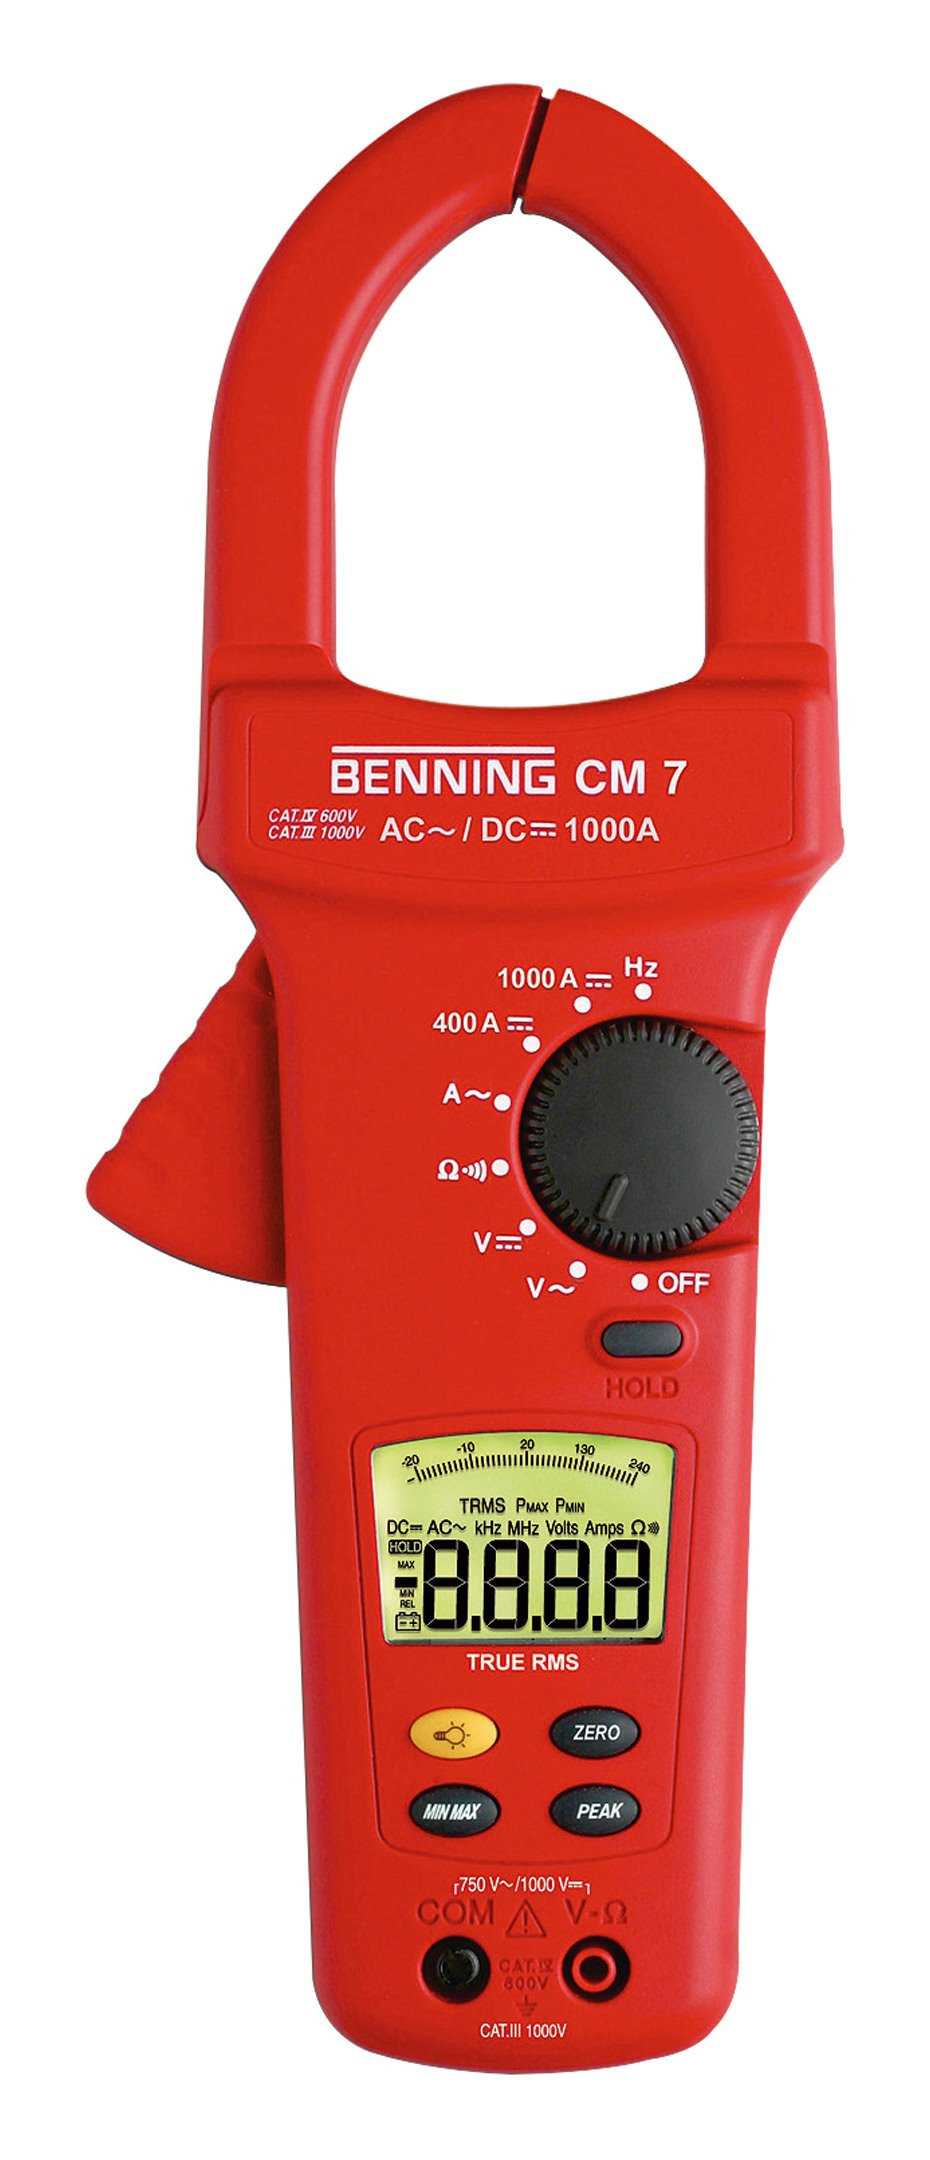 Benning Digital-Stromzähler-Multimeter CM 7 - 044059